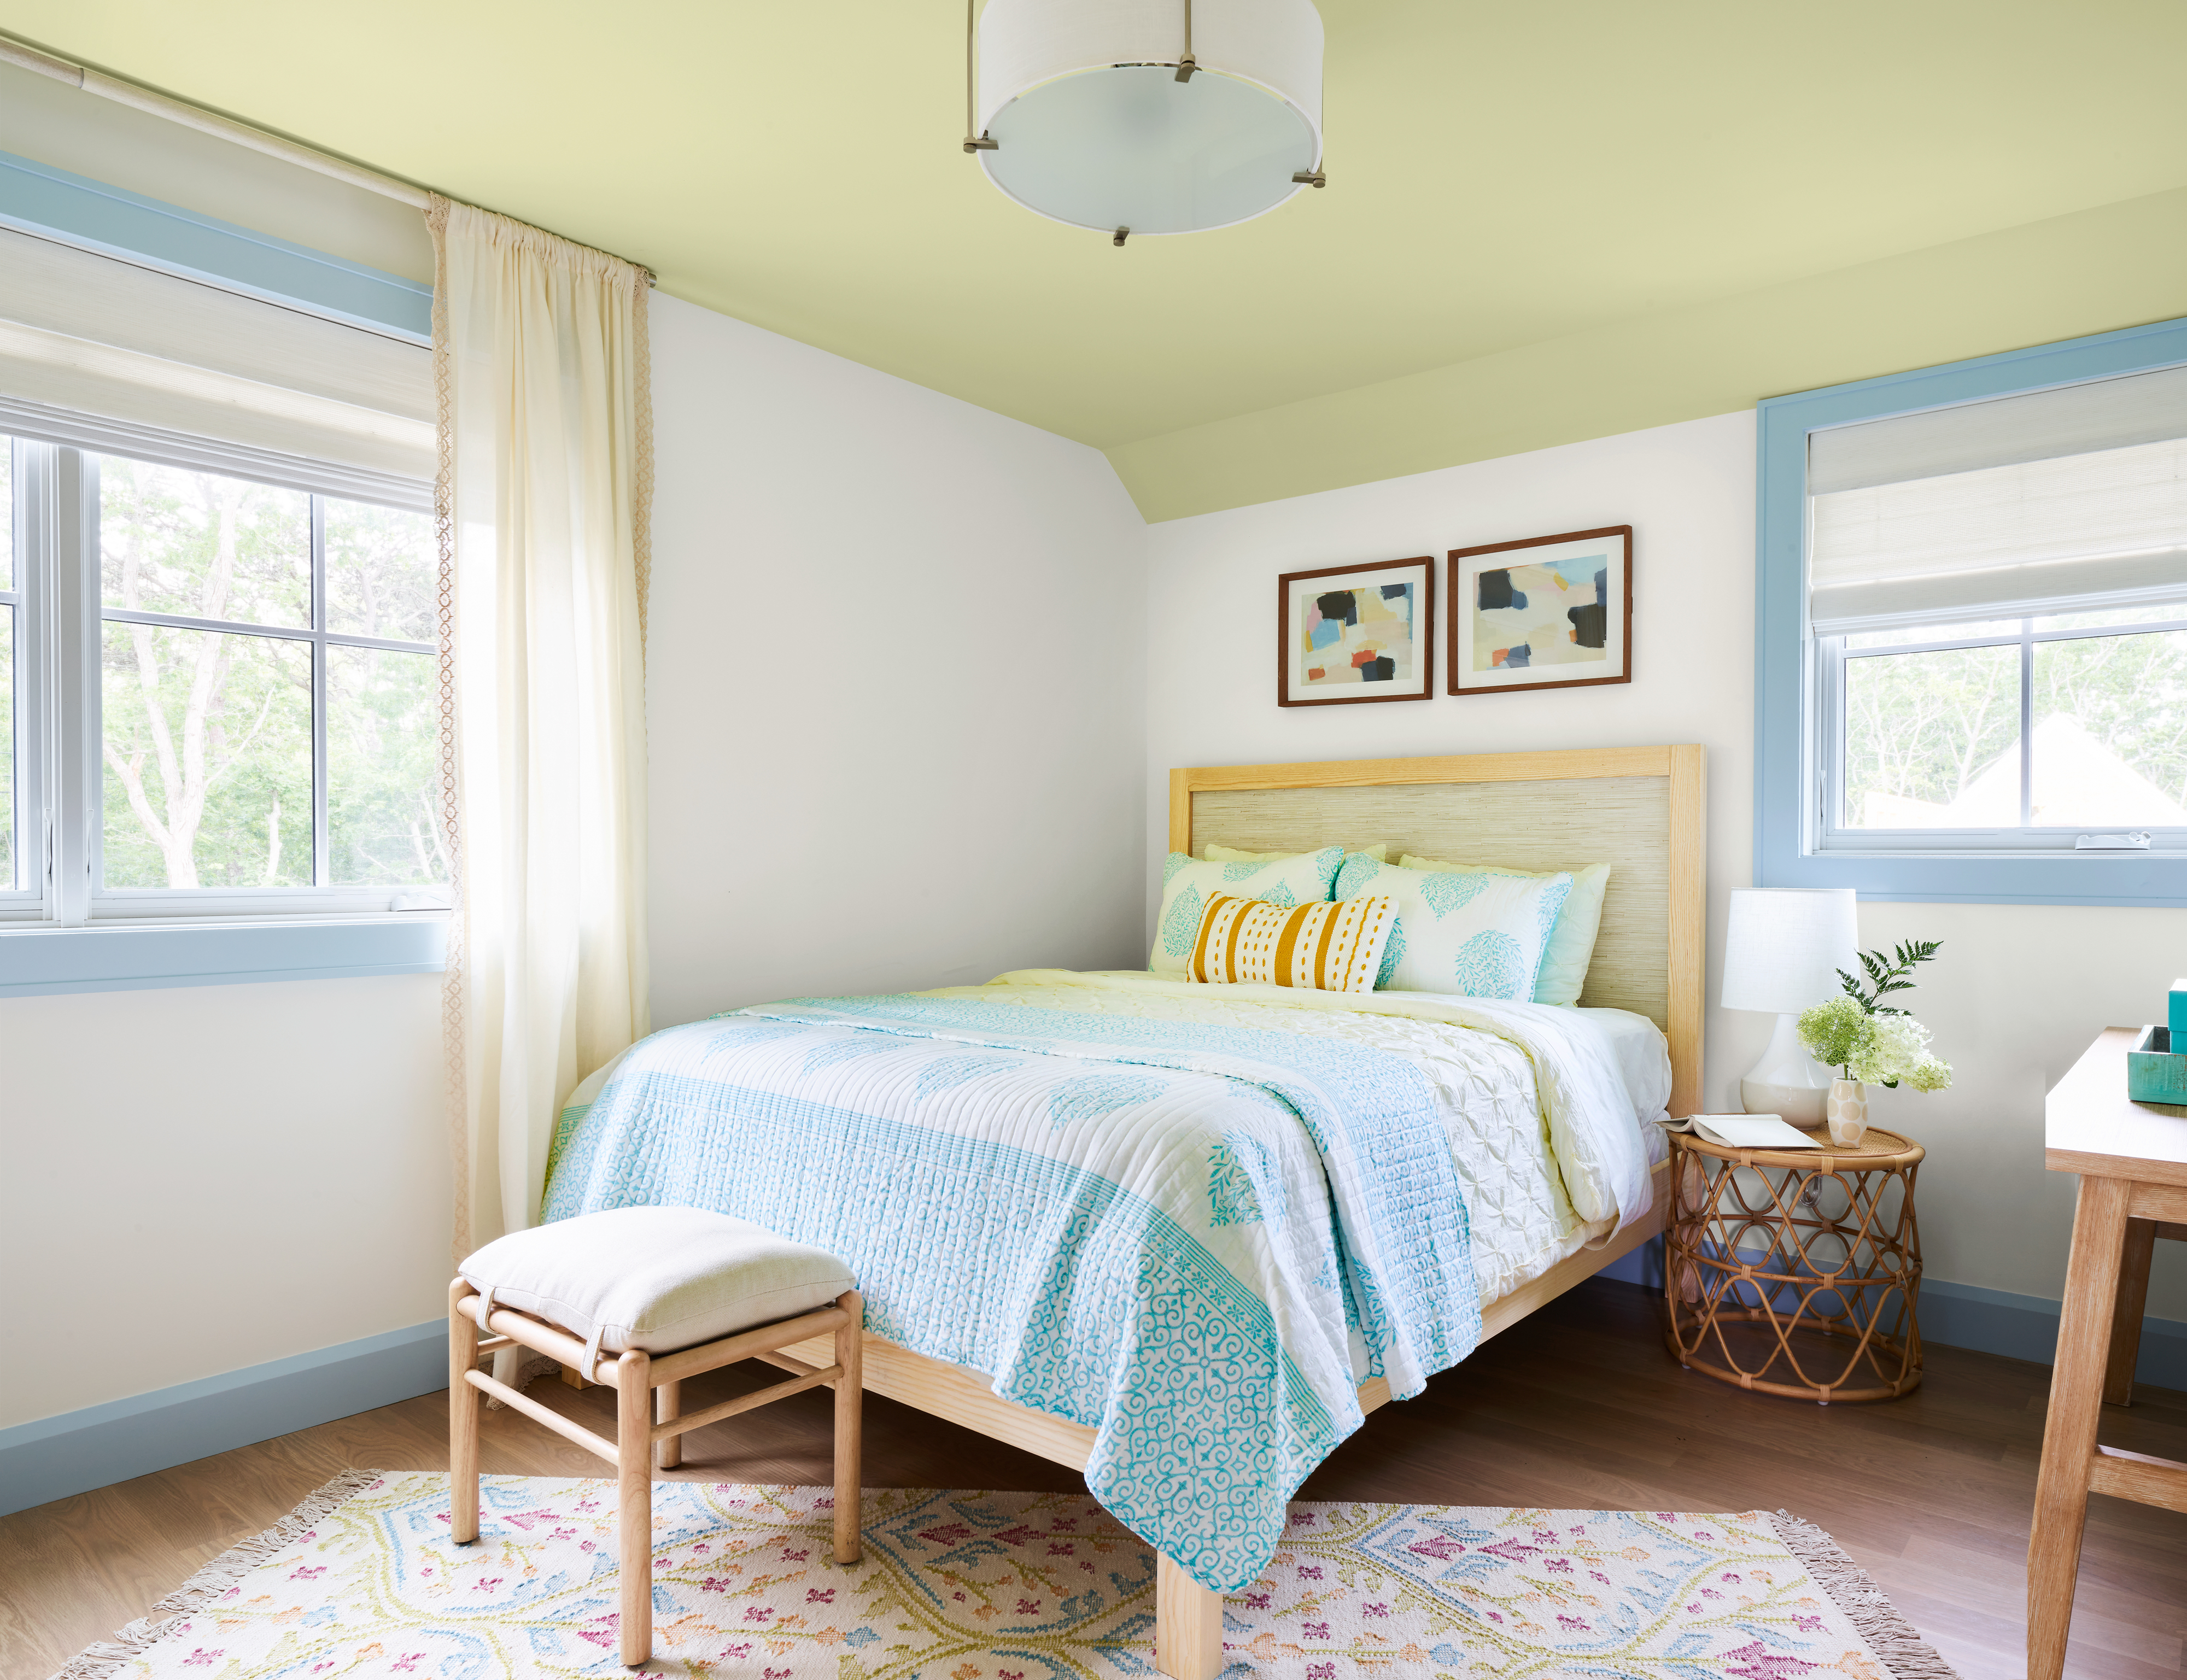 Cottage on the Cape, Idea House 2020, Bed and Bath